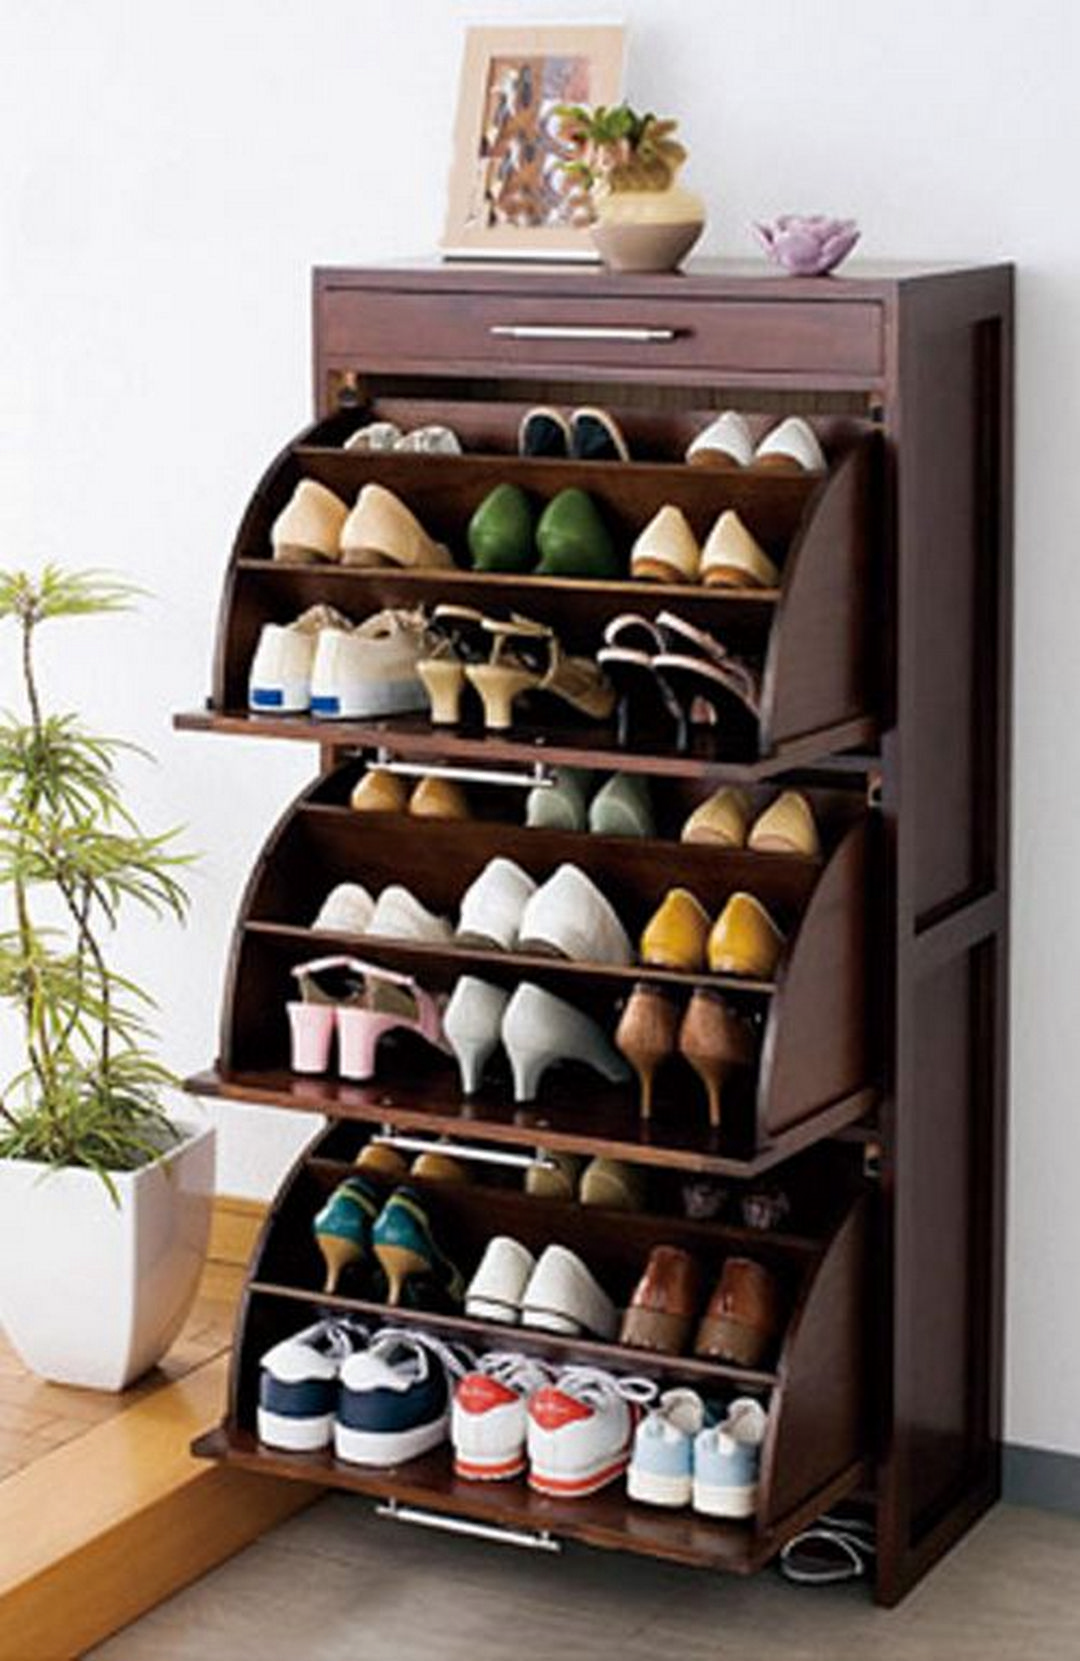 Practical Shoes Rack Design Ideas For Small Homes Shoe Storage Cabinet Rack Design Home Furniture